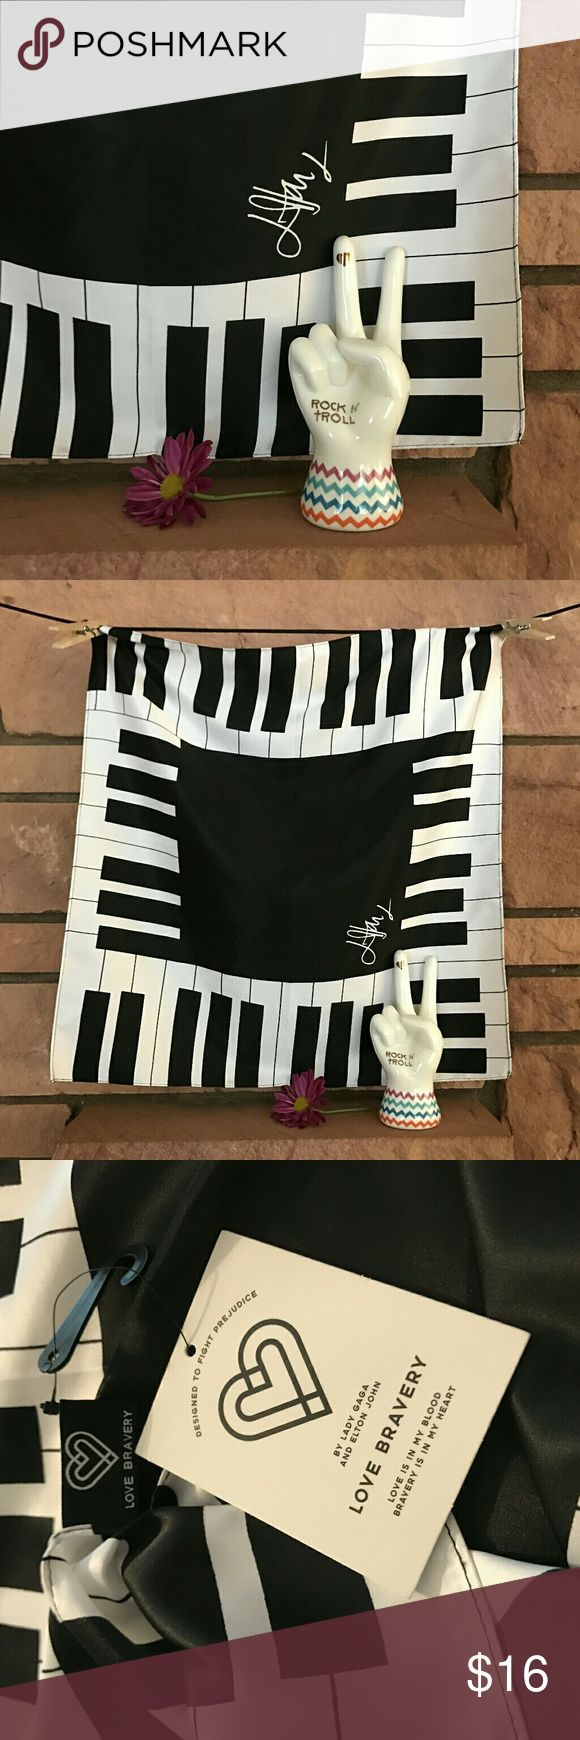 """NWT Love Bravery Piano Scarf Designed to fight prejudice, this scarf will be a great addition to your fun wardrobe!  It is a 18"""" square.   From a smoke-free and happy-to-bundle closet.   The peace hand jewelry holder is available as a free gift with purchase of a bundle of three or more Betsey Johnson Trolls and Love Bravery items.  No trades or transactions outside of Poshmark.  [N175] Love Bravery Accessories Scarves & Wraps"""